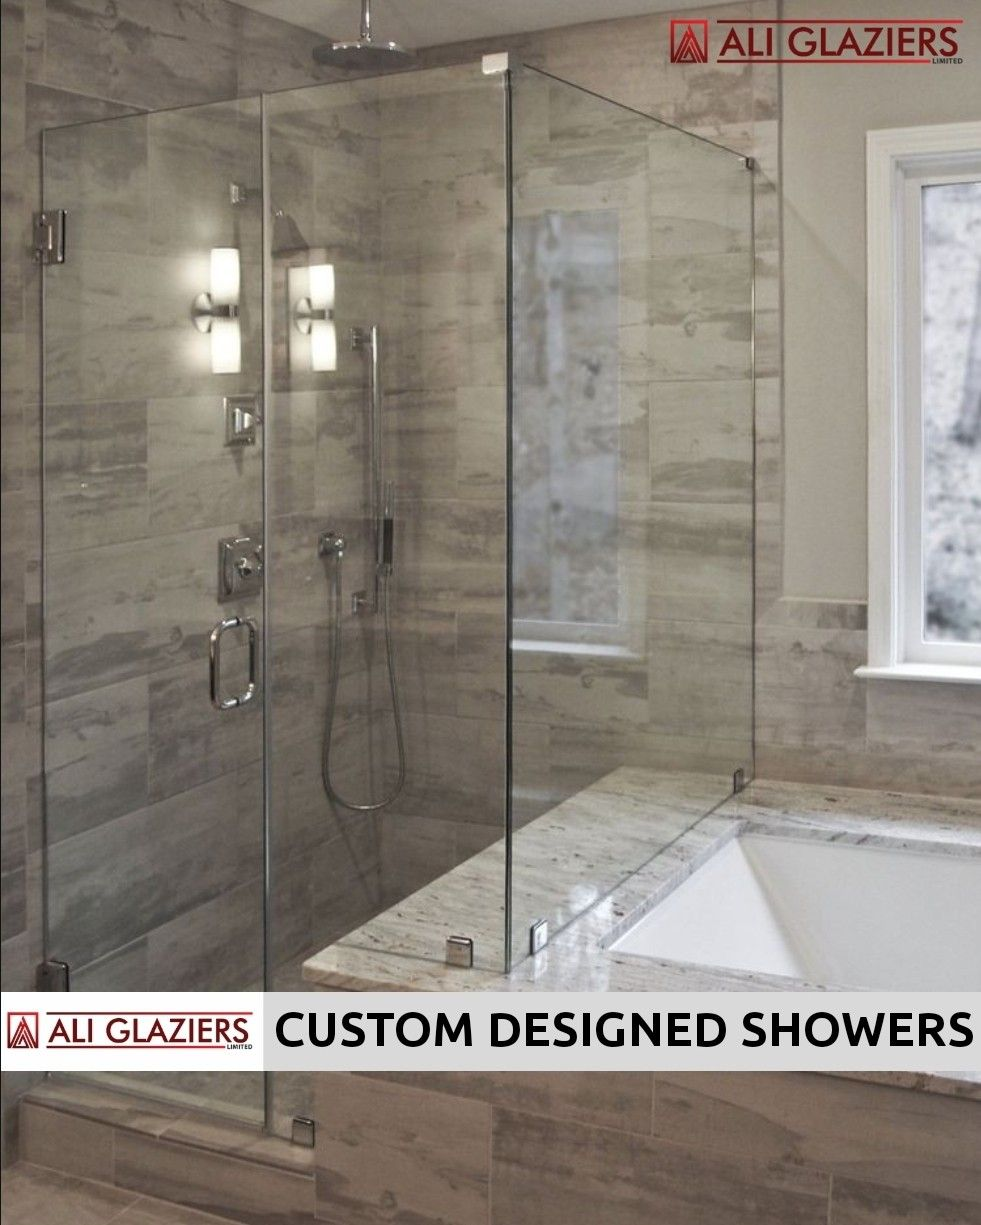 Custom Made Shower Enclosures In 2020 Shower Cubicles Small Bathroom Bathrooms Remodel